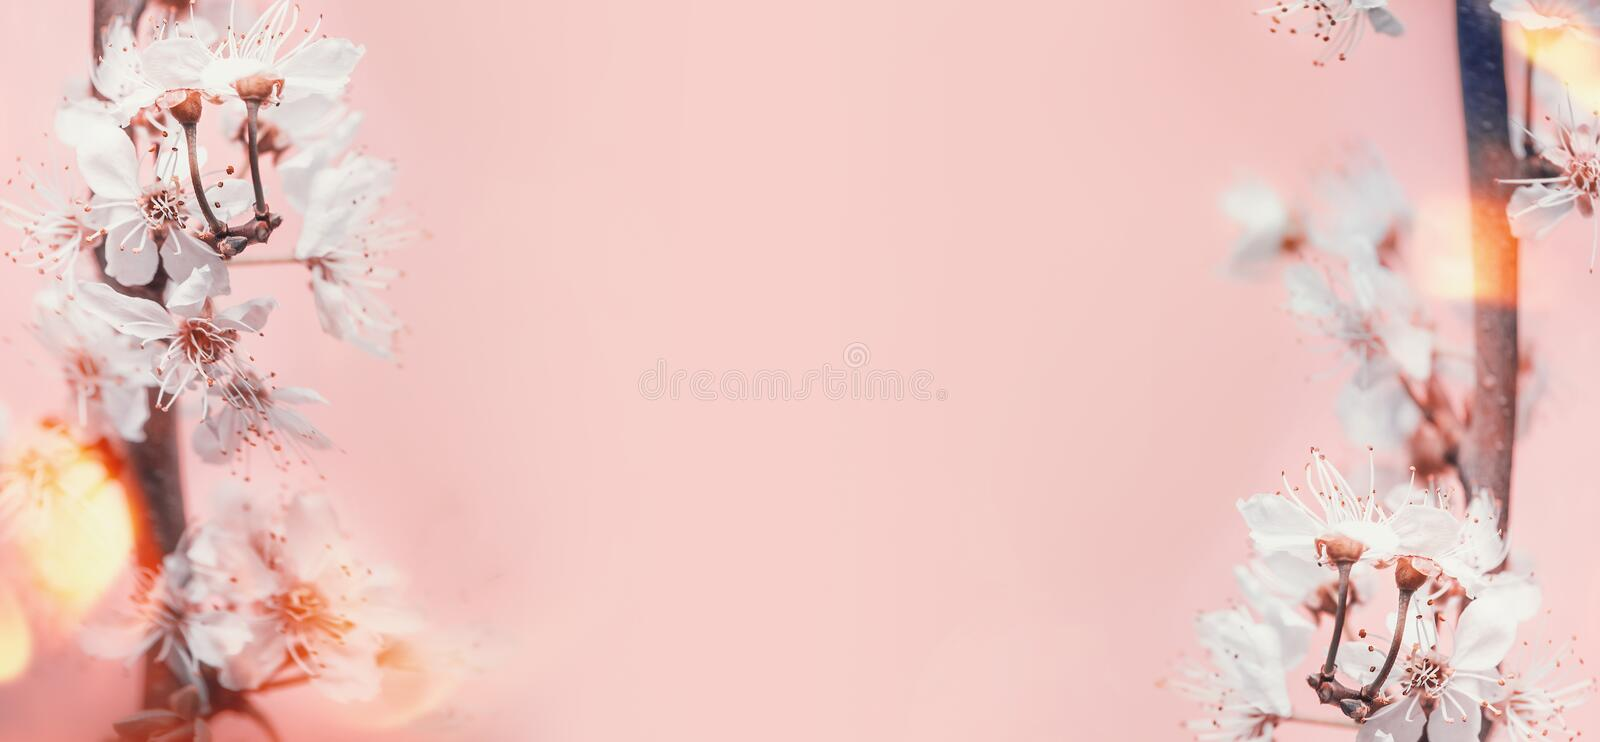 Spring background with white cherry blossom at pastel pink background with sunny bokeh royalty free stock image